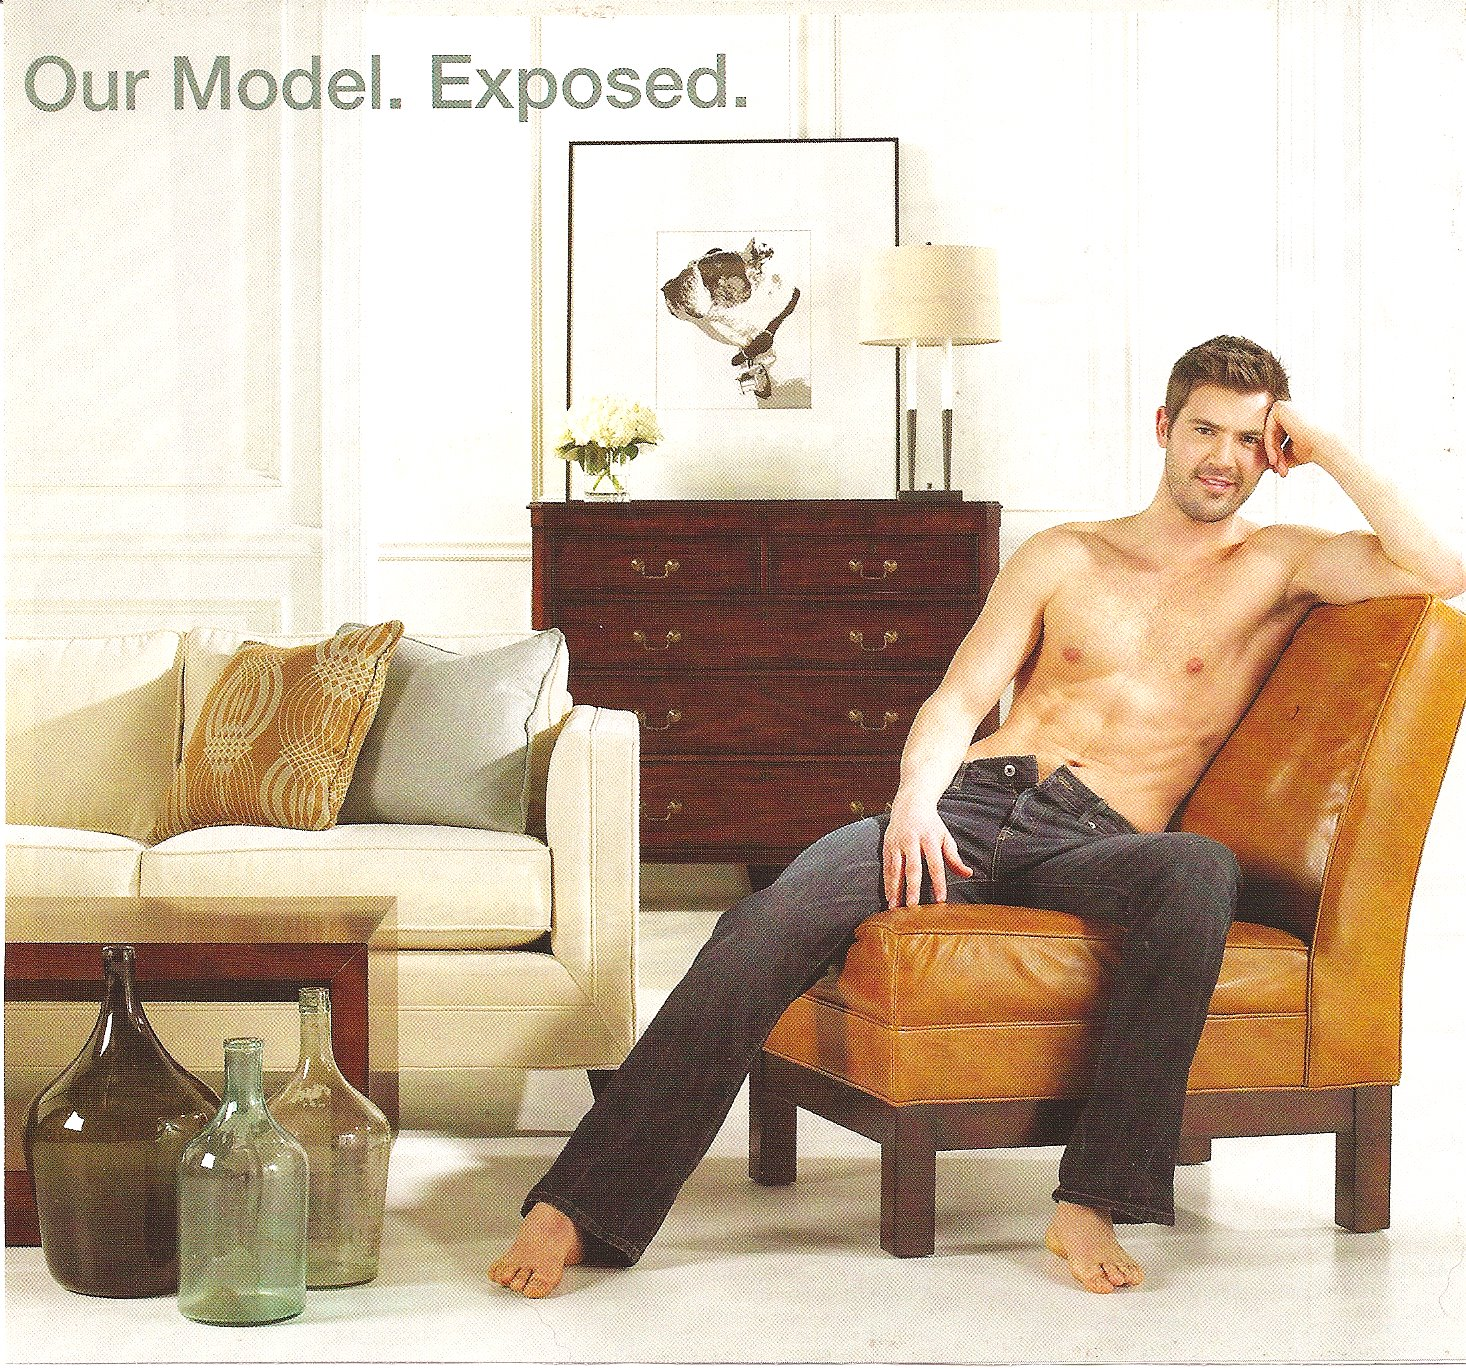 Male Bodies in Interior Design Magazine Ads Sociological Images